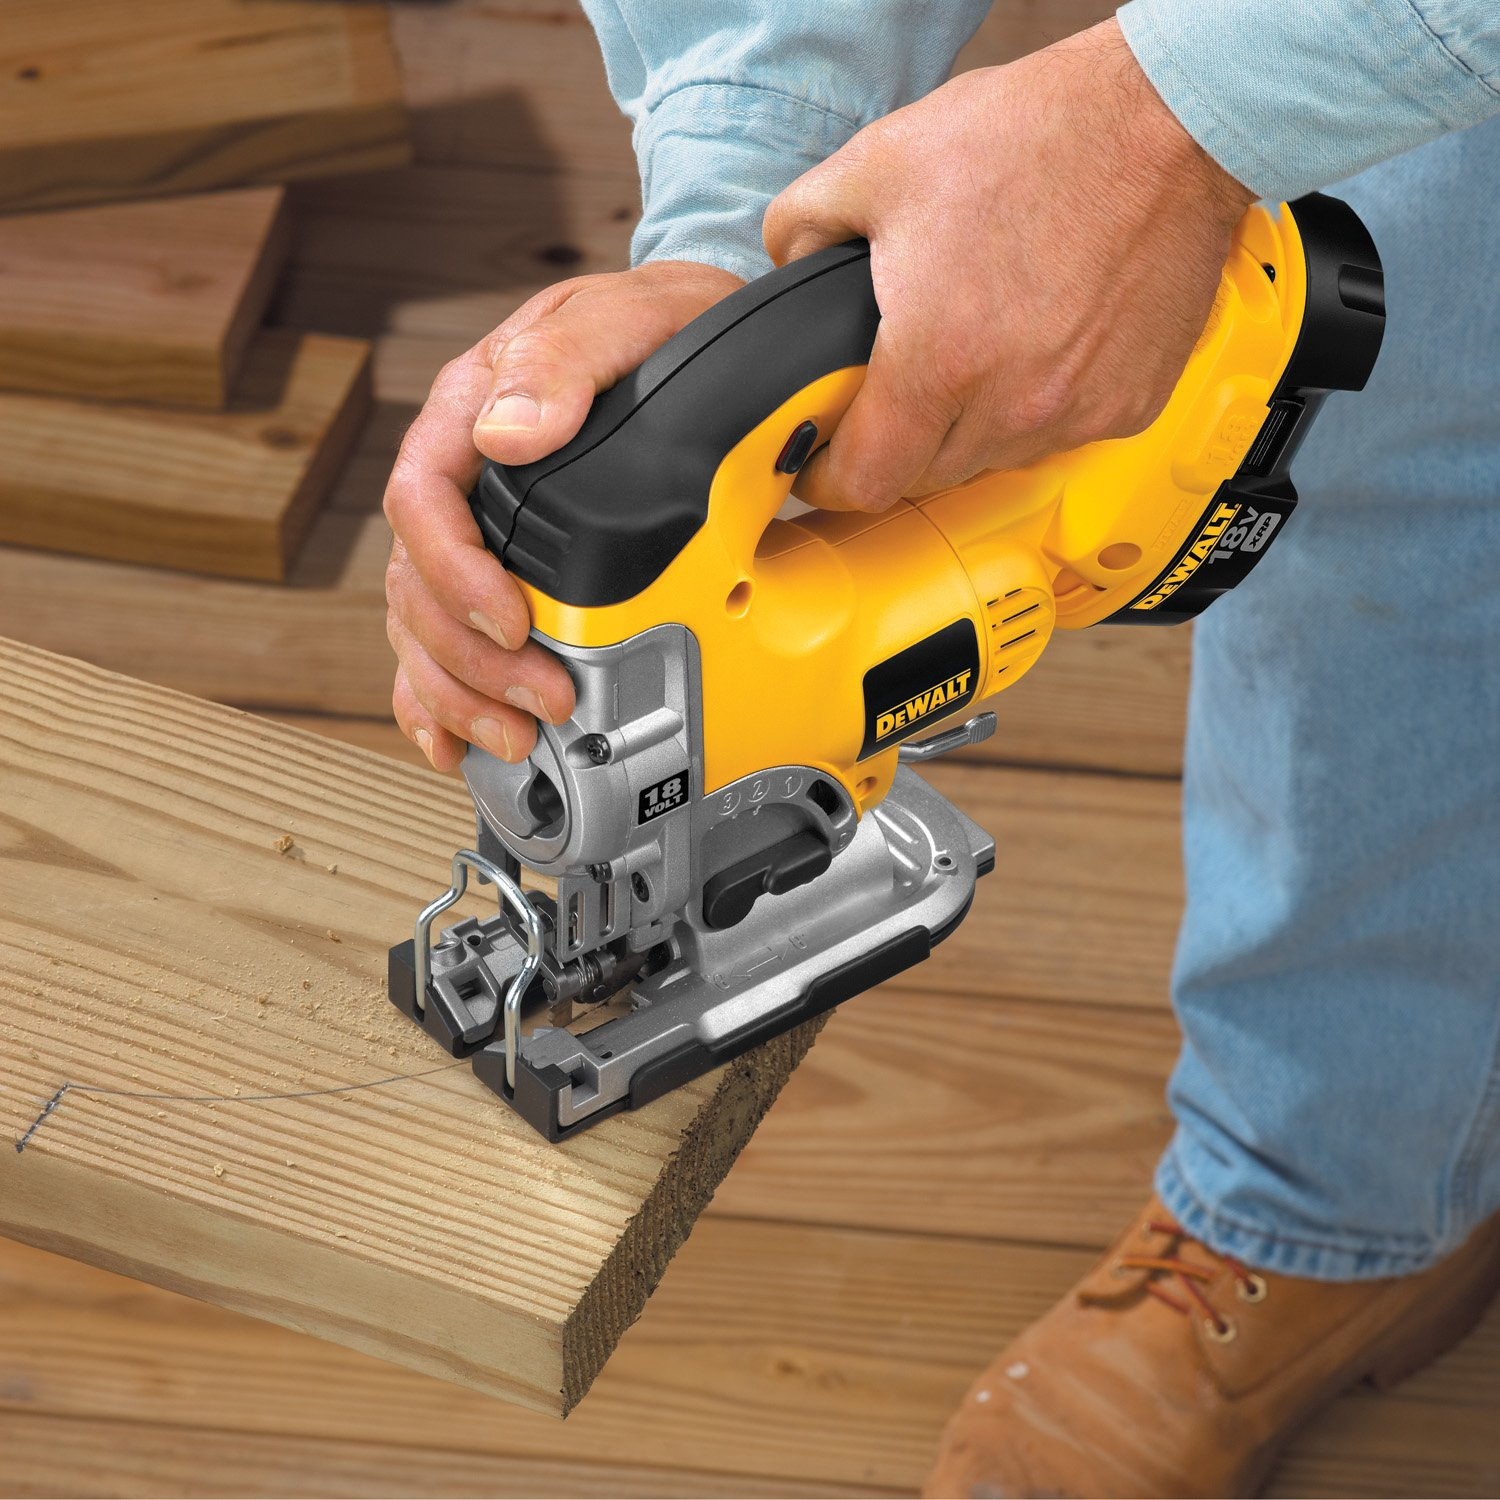 Dewalt dc330k heavy duty 18 volt ni cad cordless top handle jig saw dewalt dc330k heavy duty 18 volt ni cad cordless top handle jig saw kit power jig saws amazon keyboard keysfo Image collections